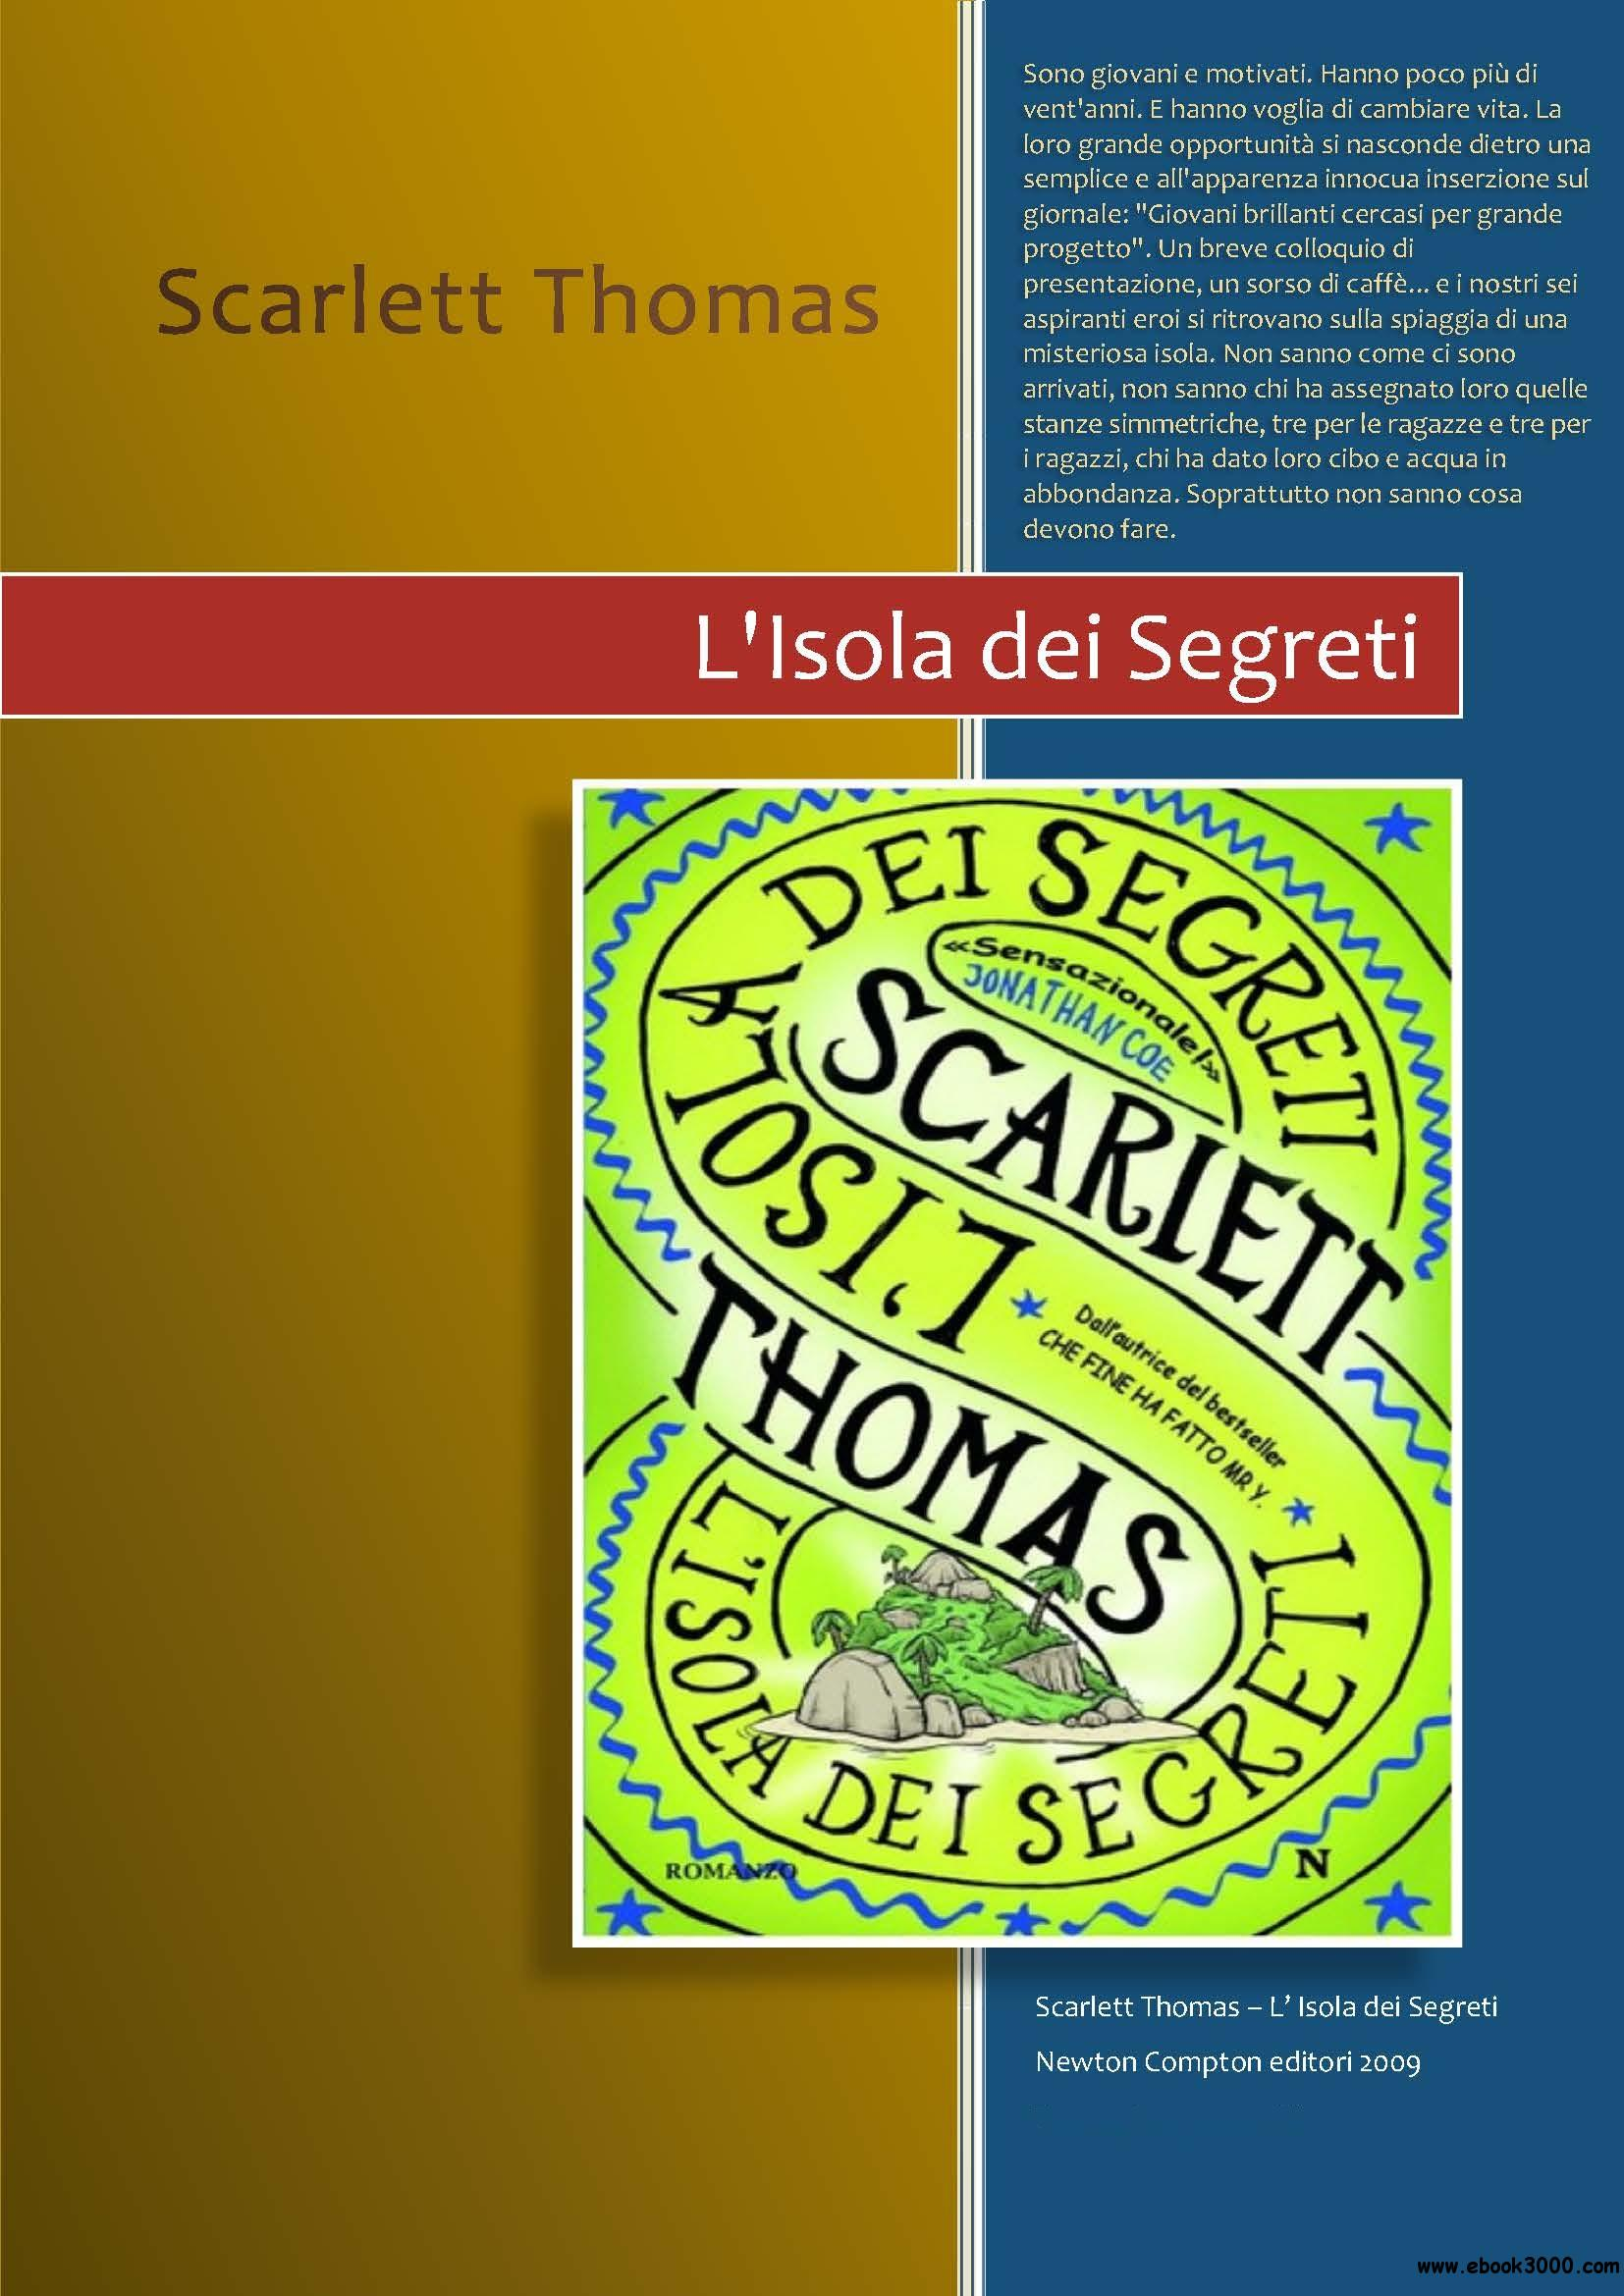 Scarlett Thomas - L'isola dei segreti free download